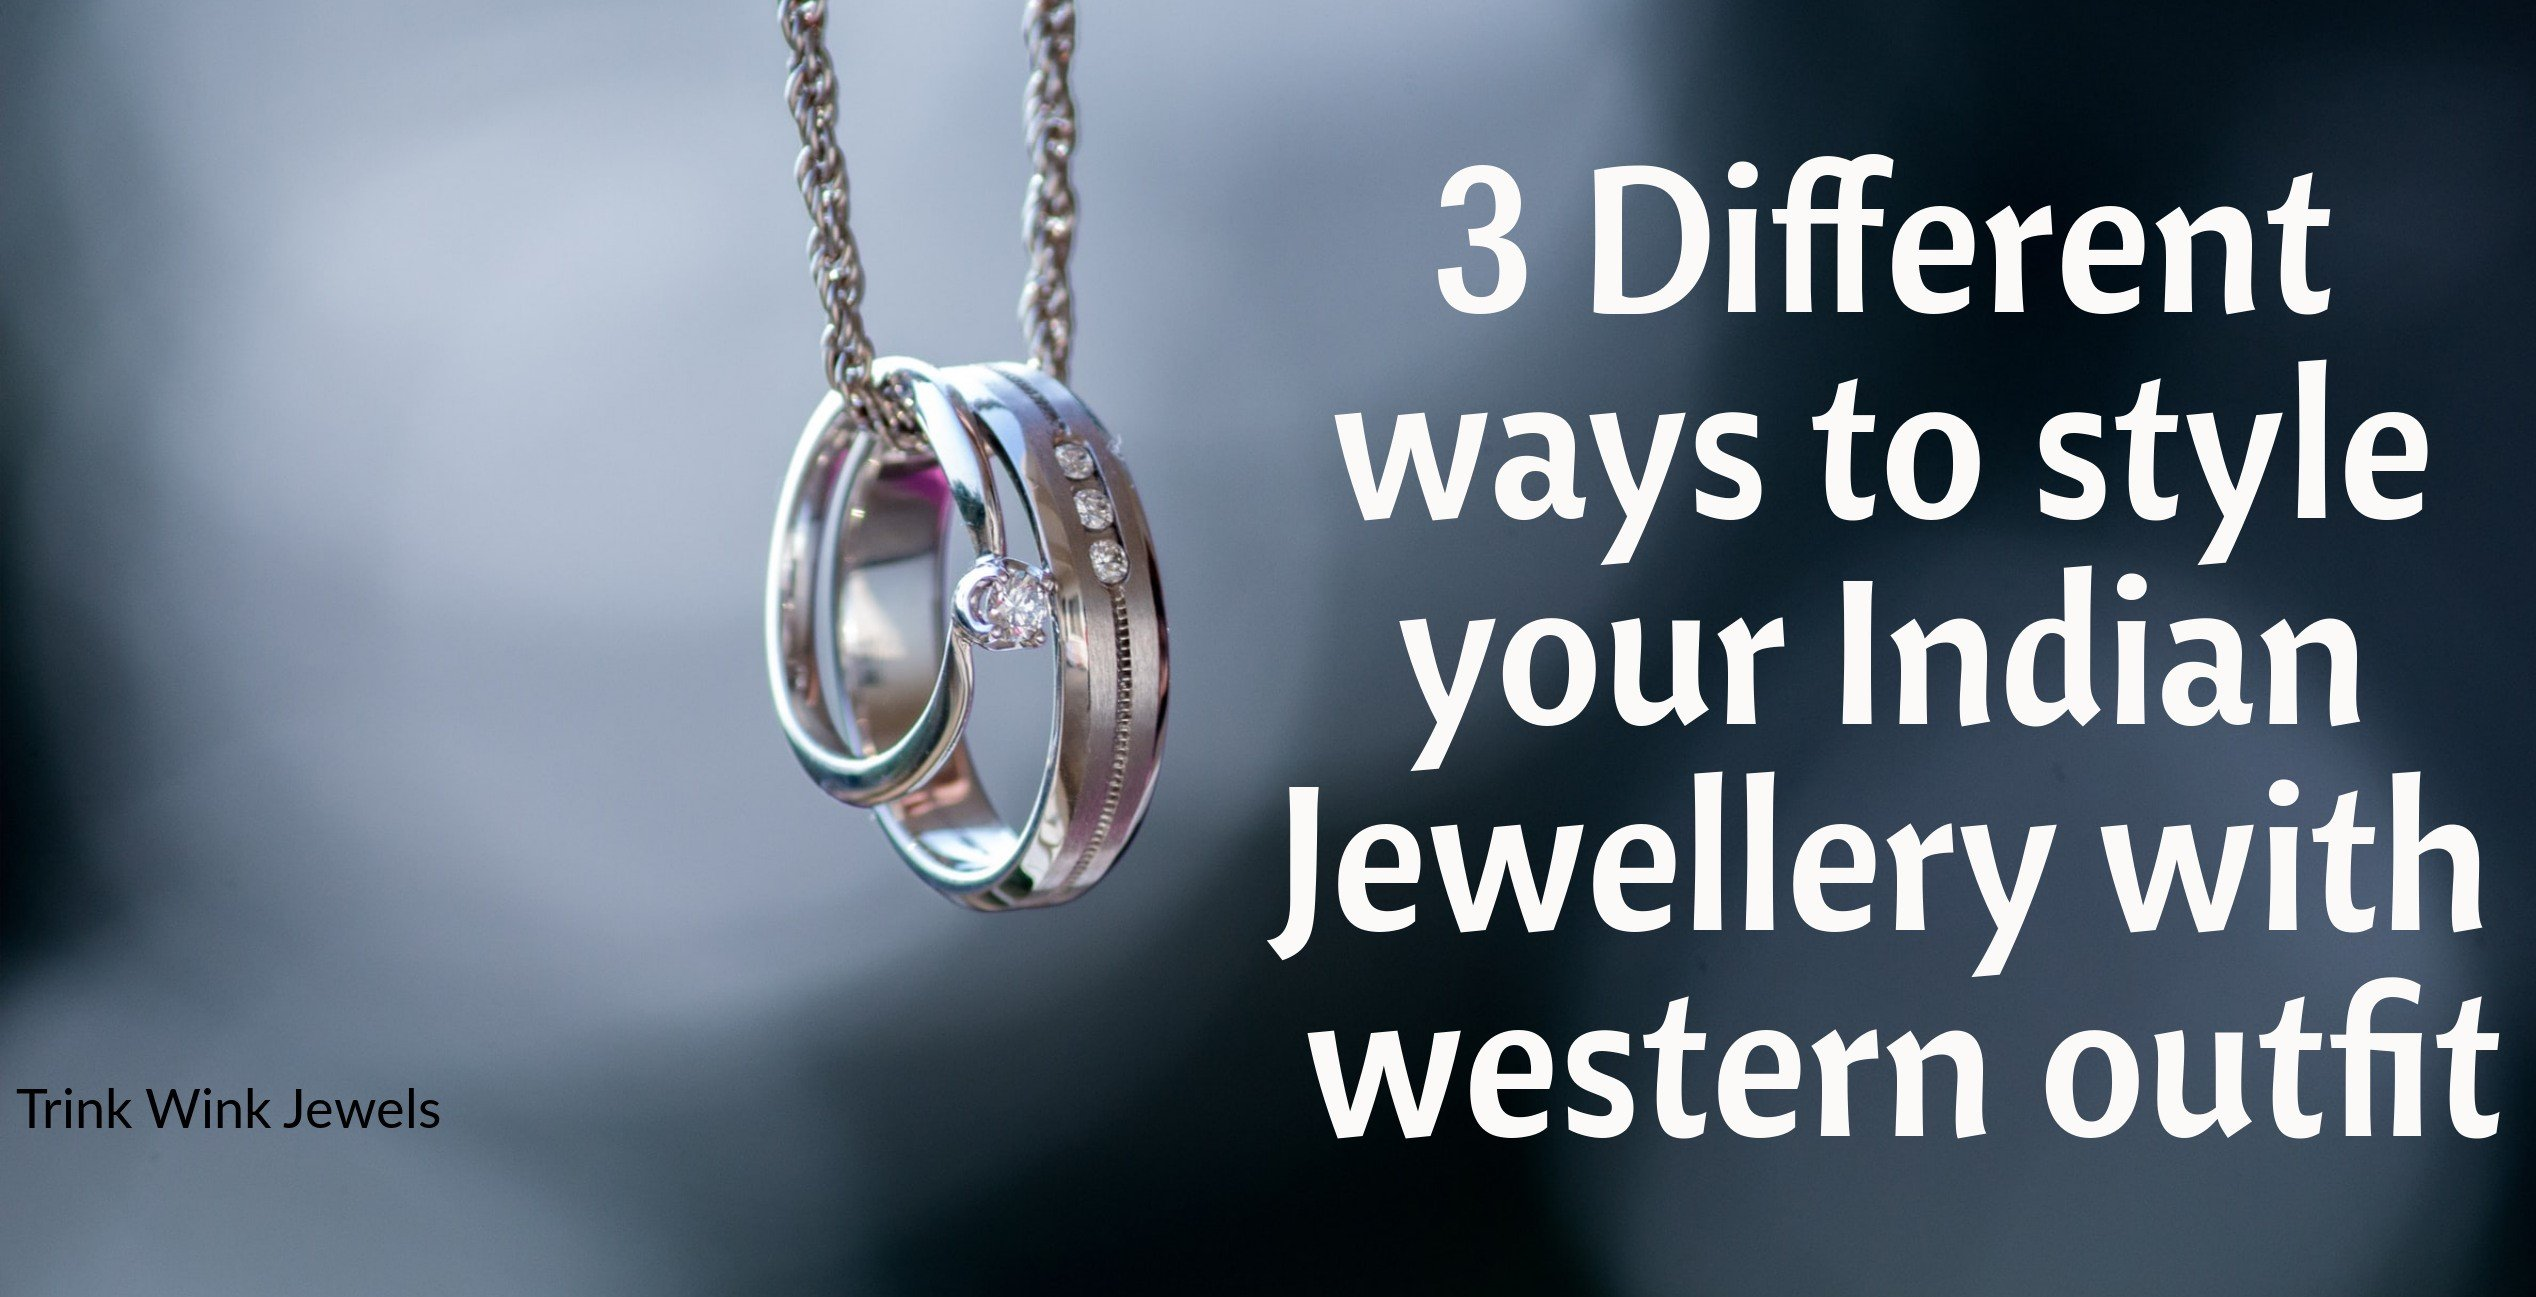 Different ways to style to western jewellery with indian outfit